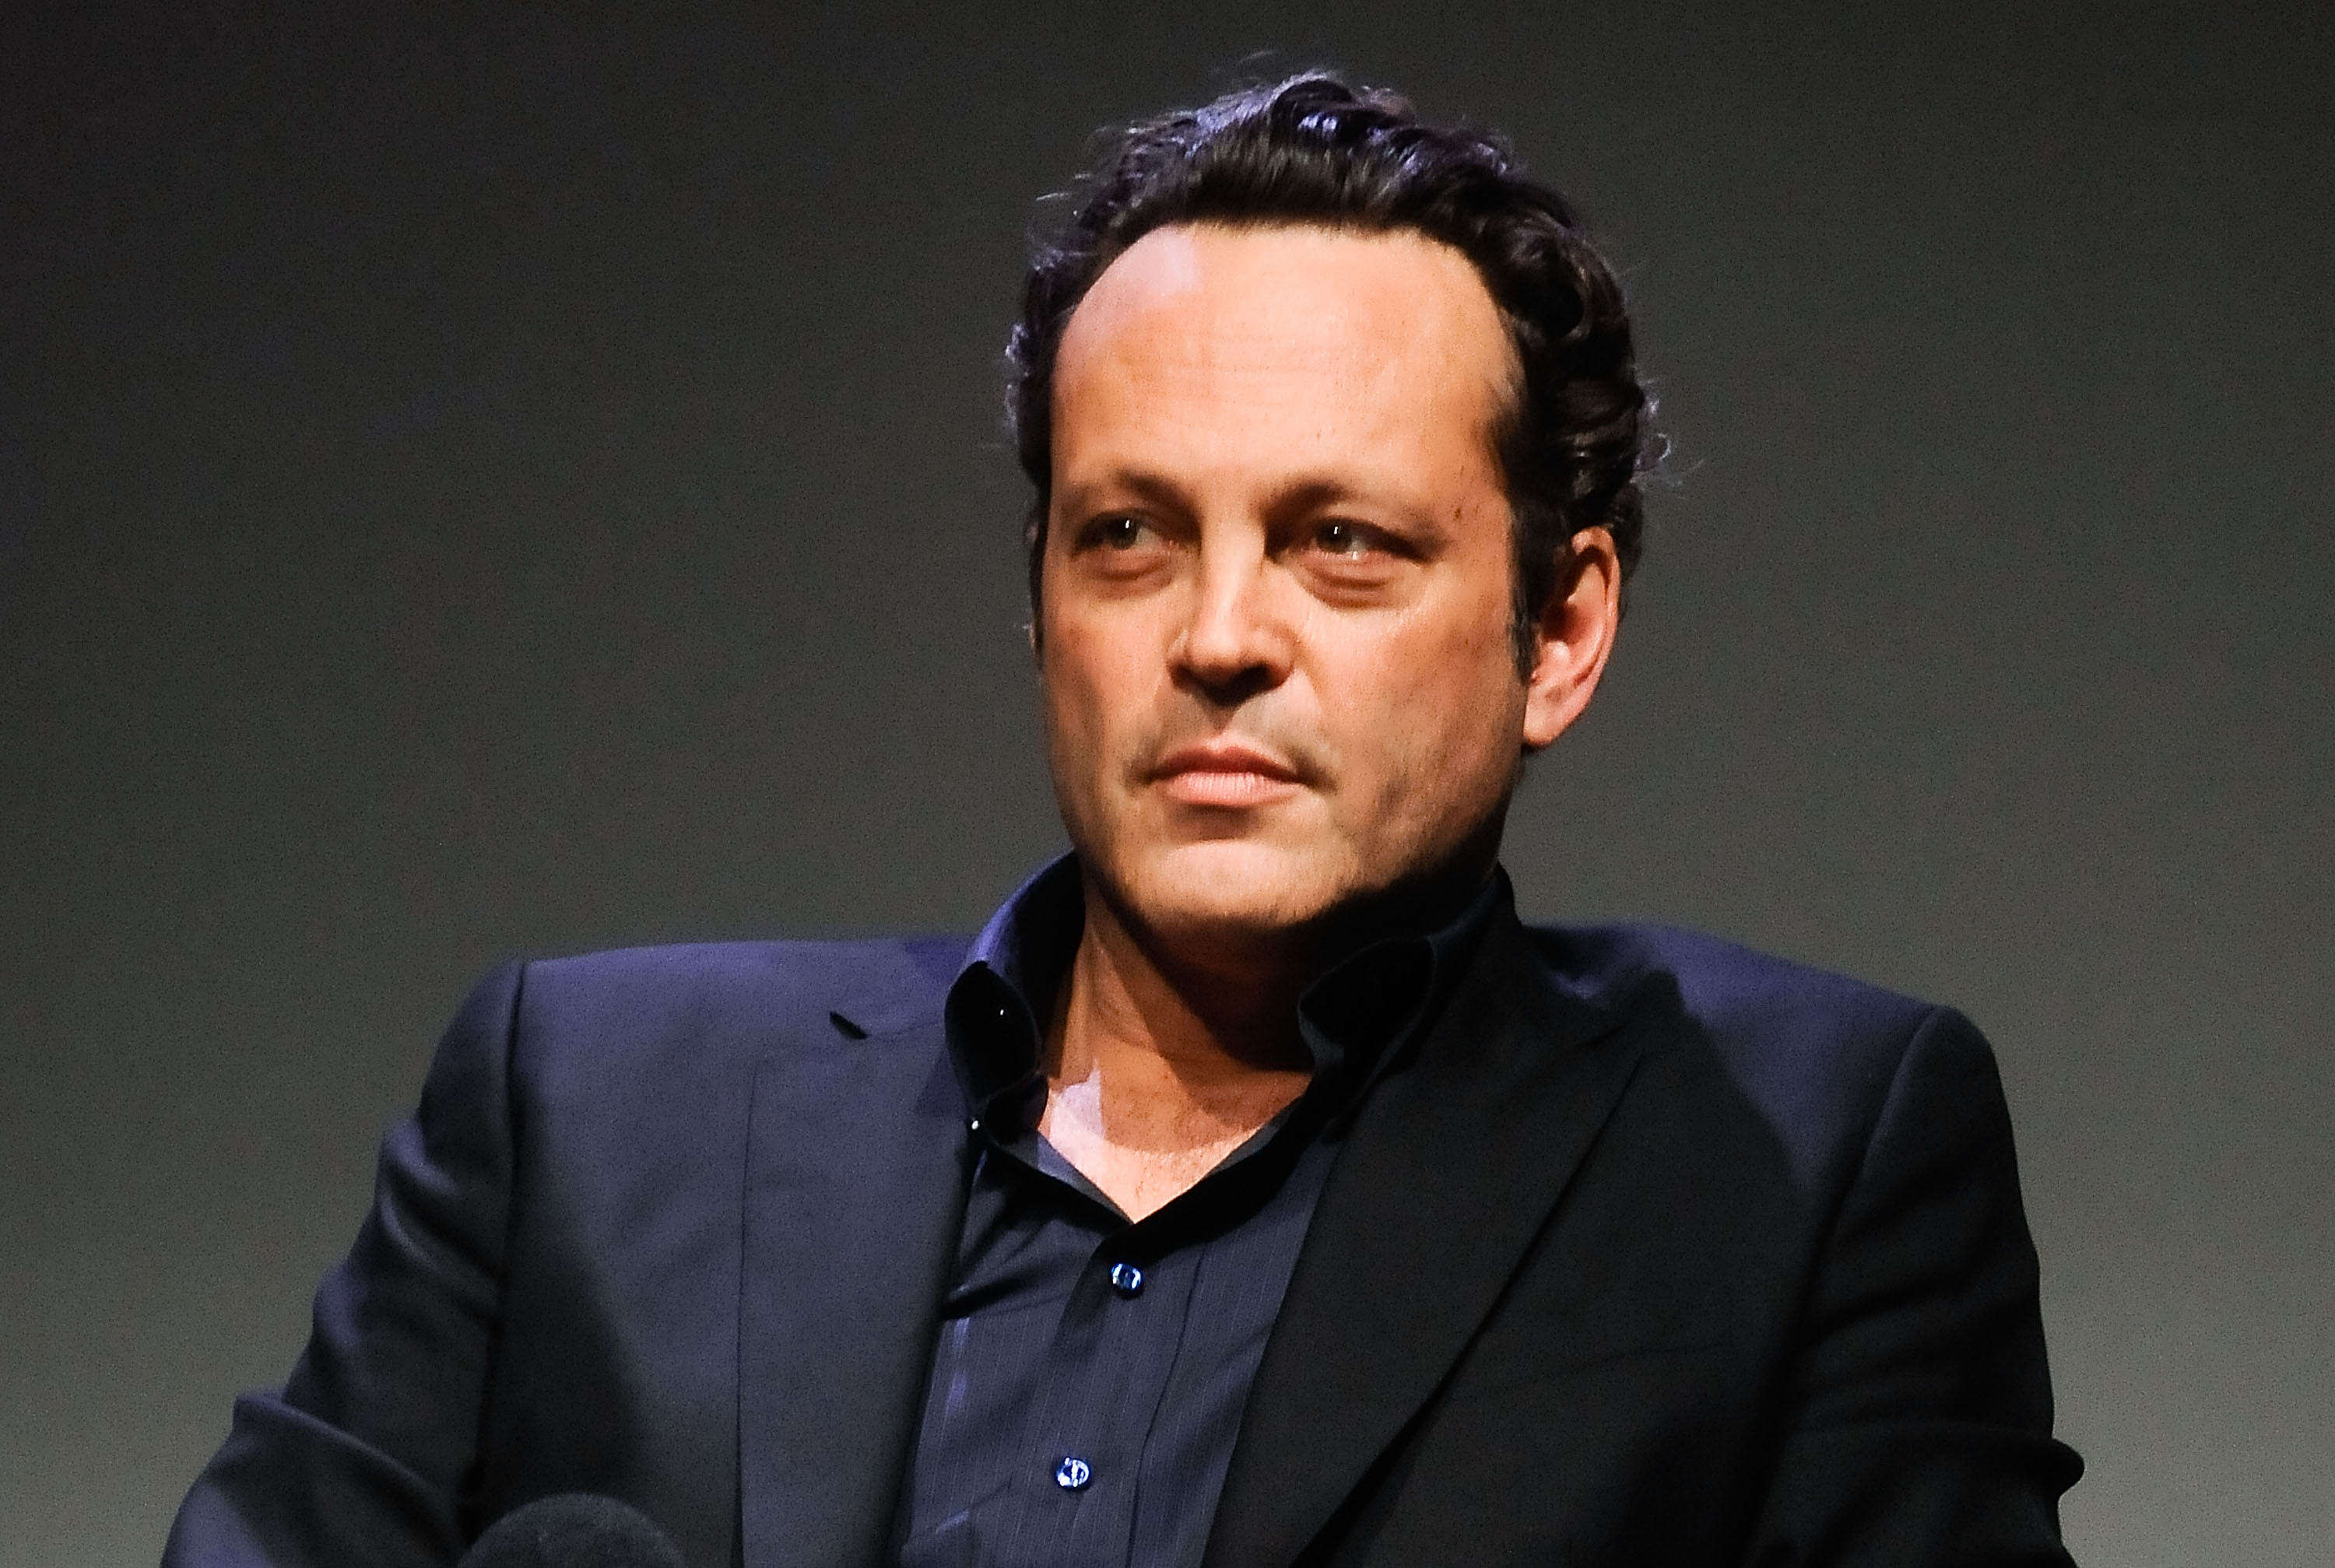 Intelligence Capabilities Exposed By Edward Snowden Shut Down, Was He A Hero After All? vince vaughn oscars